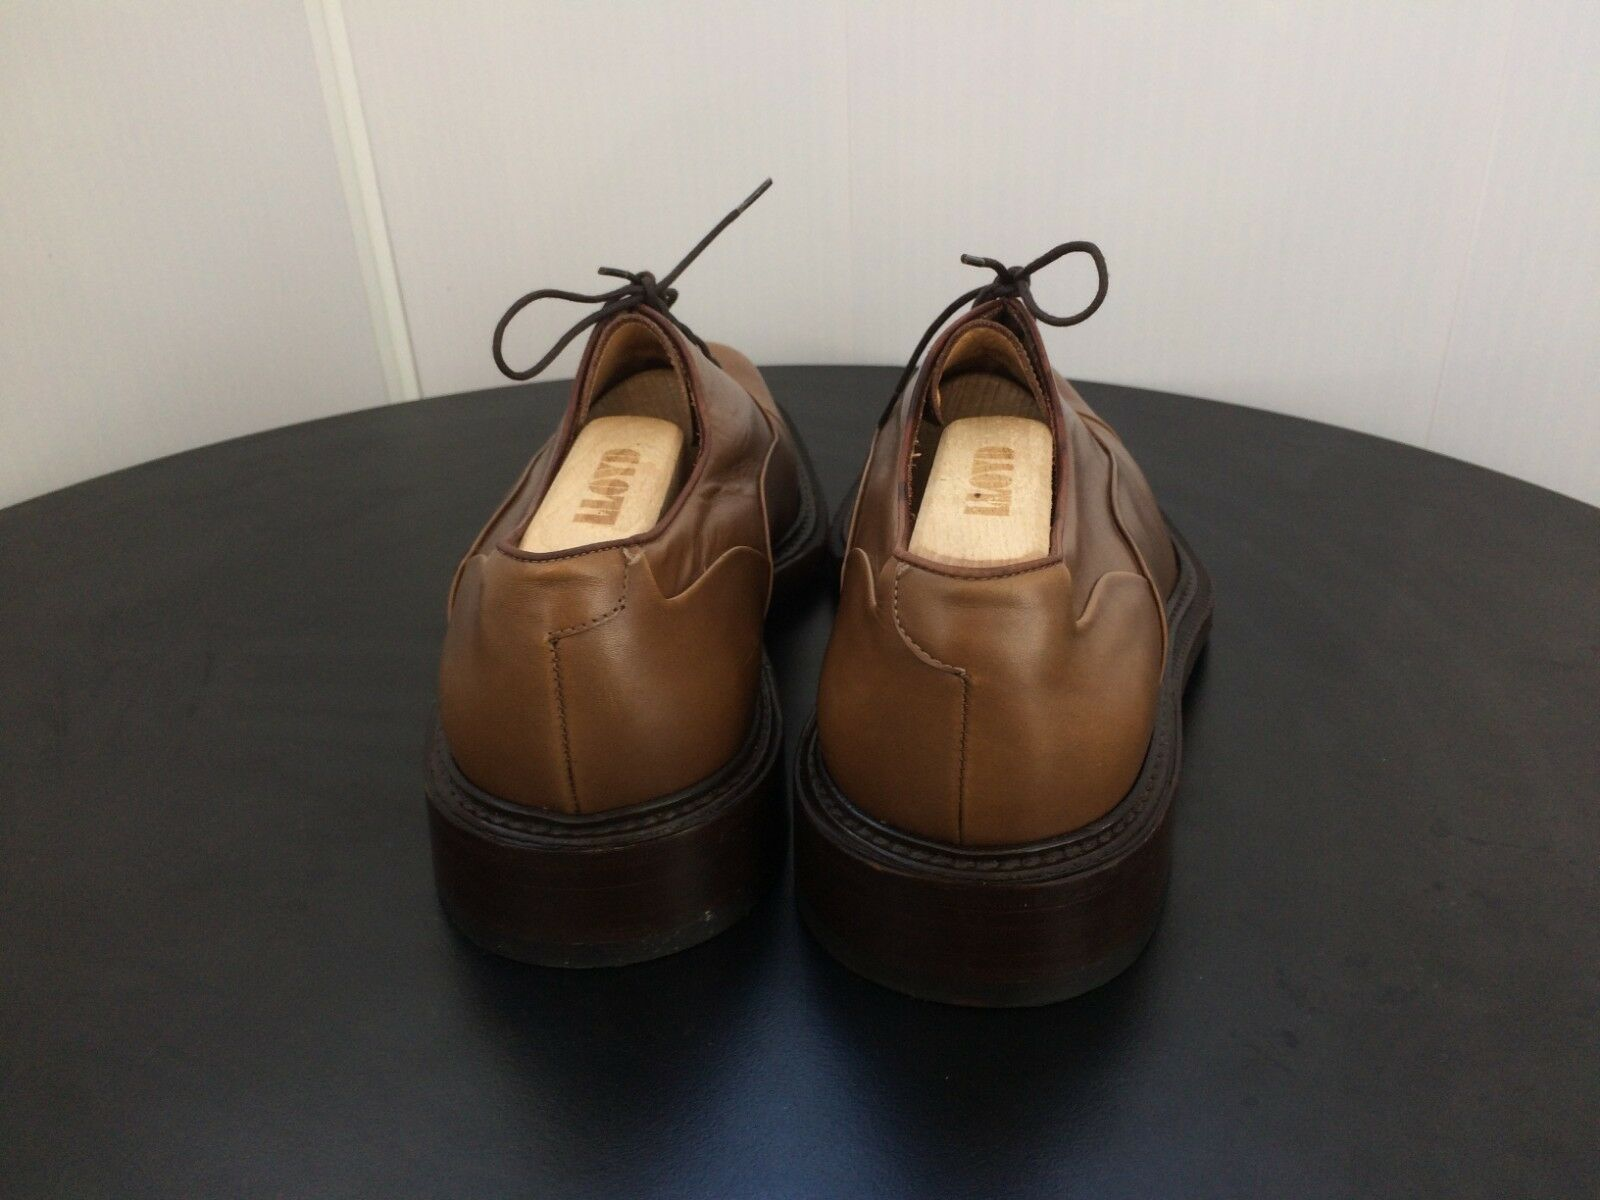 Bally Dress Premium Schuhes Braun Leder Dress Bally Casual Oxfords 9 us 1a4d0d